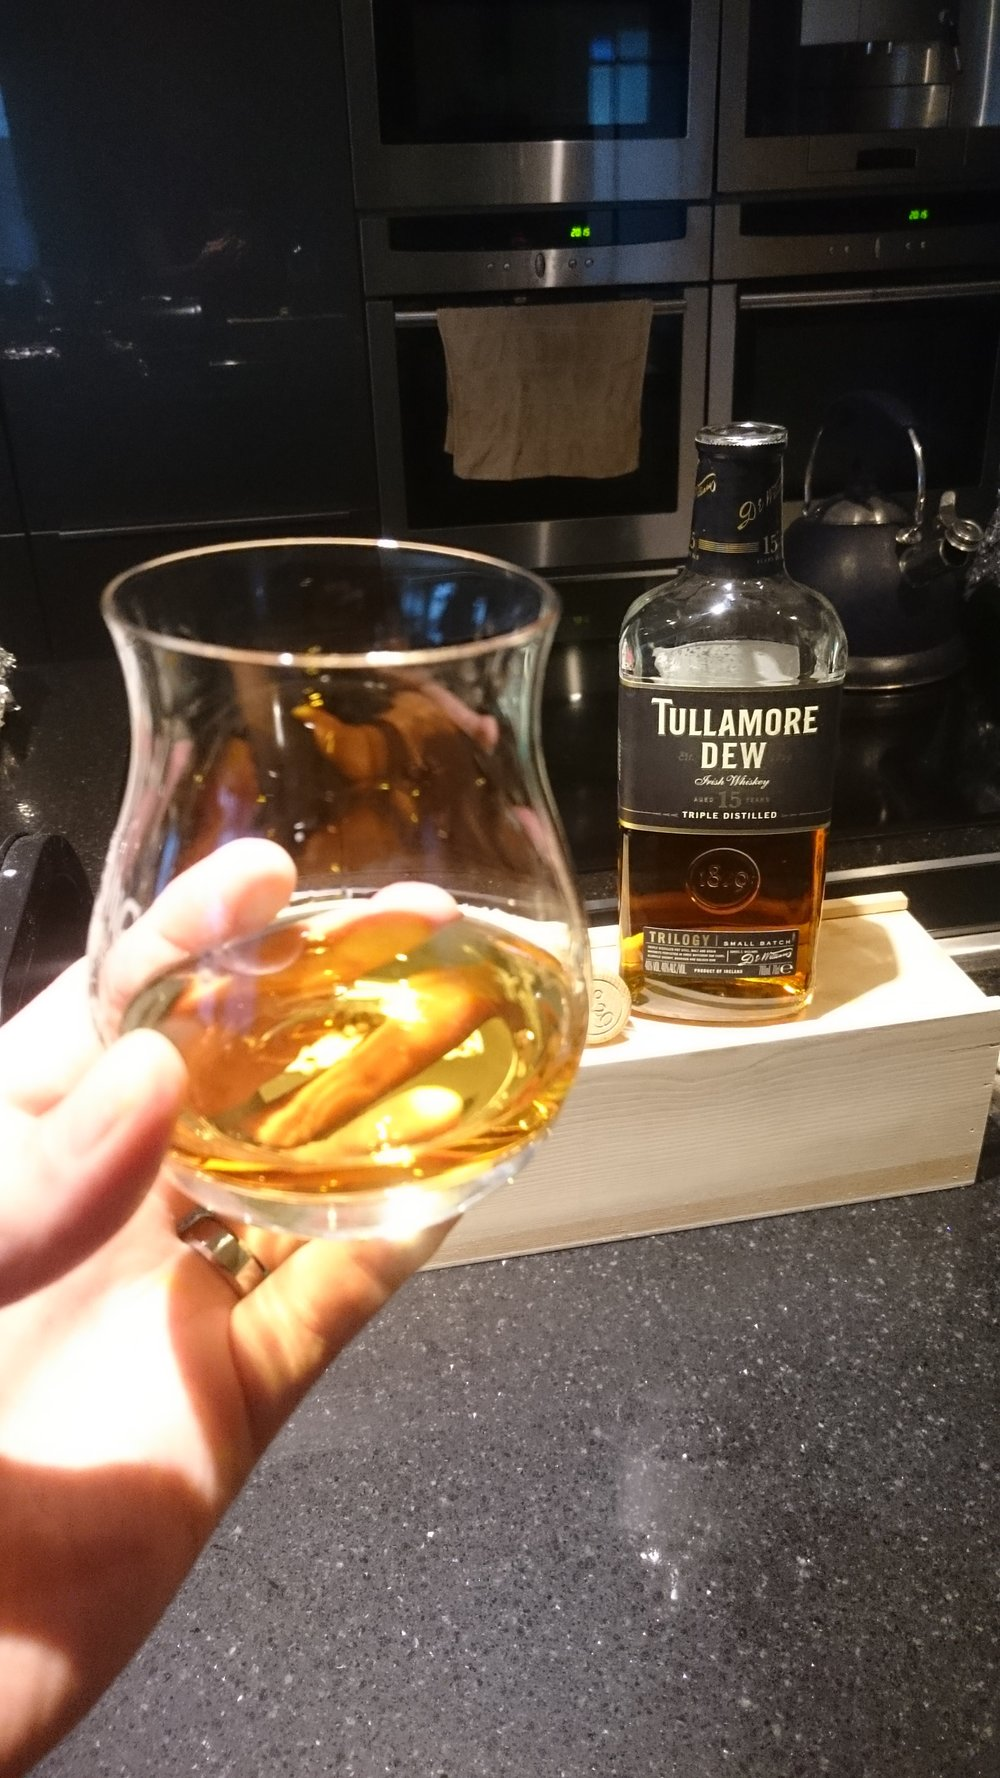 Tullamore Dew 15 year old, beaut!